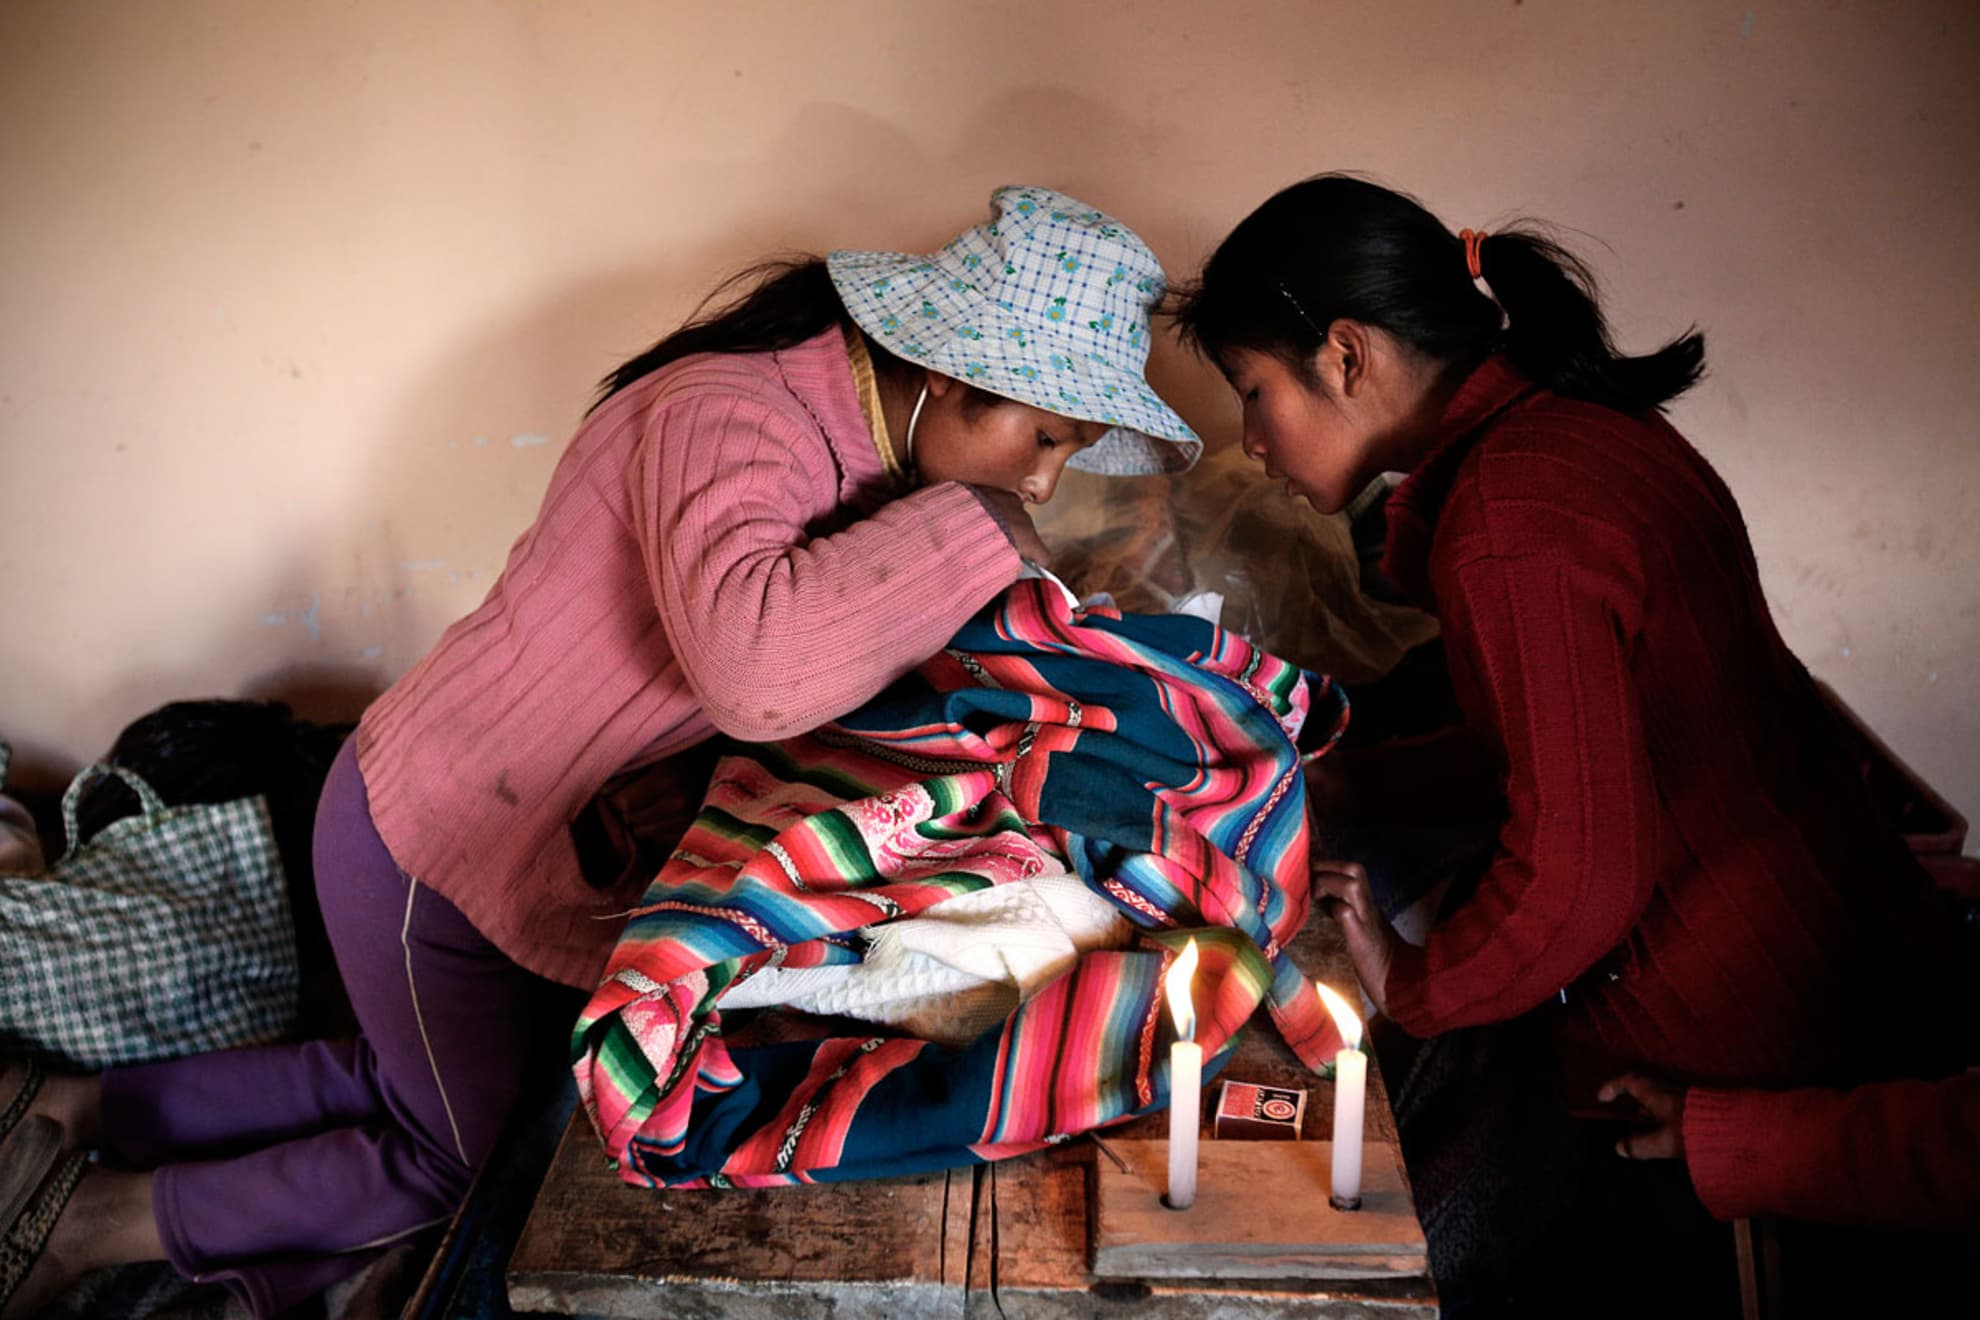 The daughters of Andrea Paris Mamani look at the body of the baby who has just given birth to her mother. The baby was born dead.